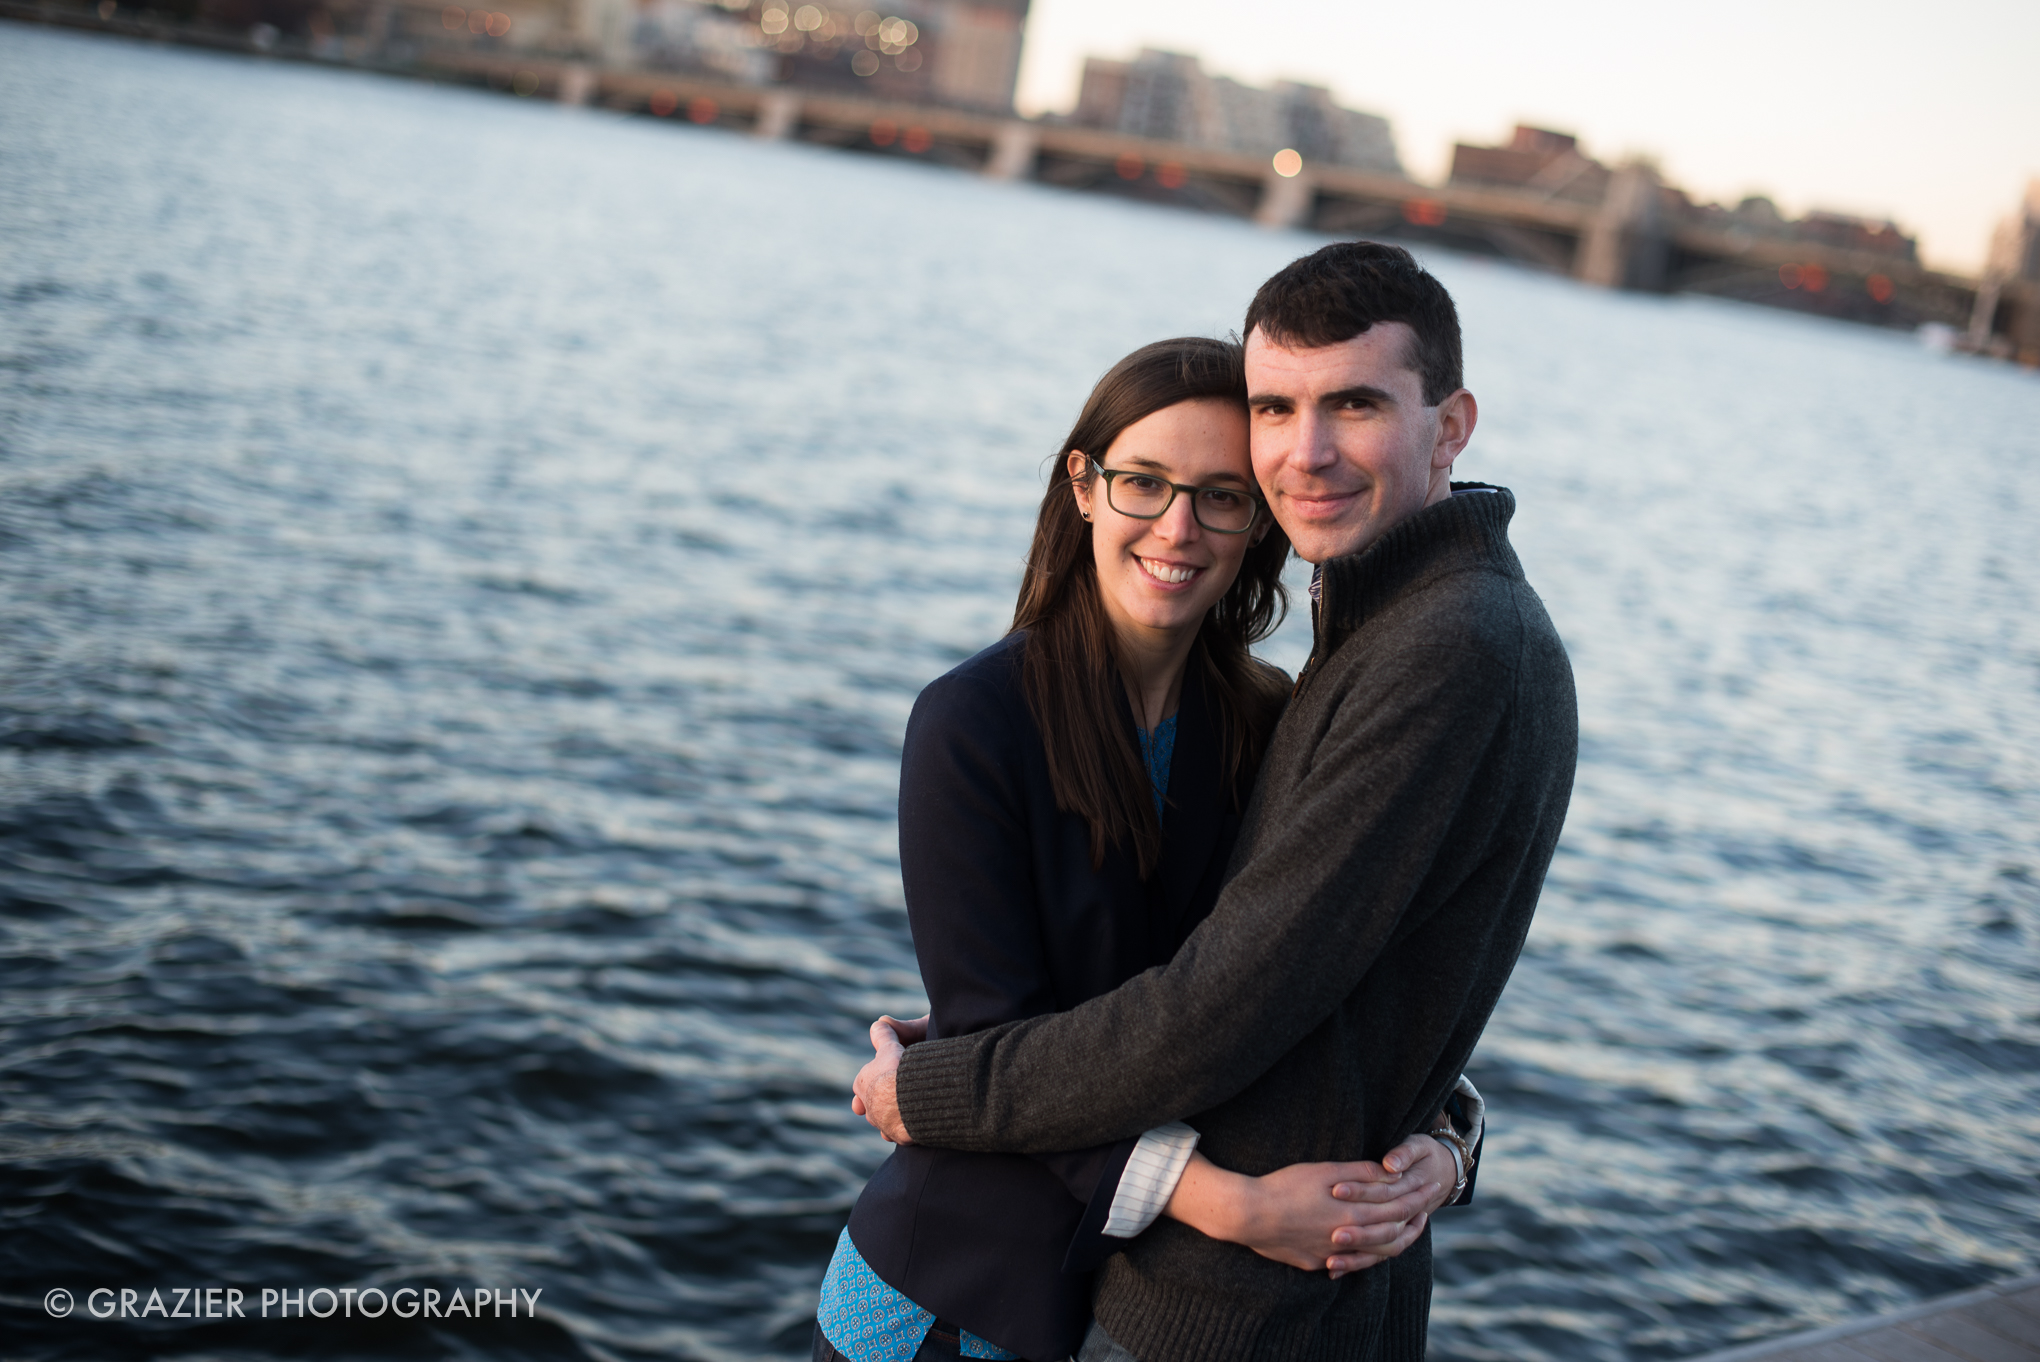 Grazier_Photography_Boston_Engagement_160430_095.jpg